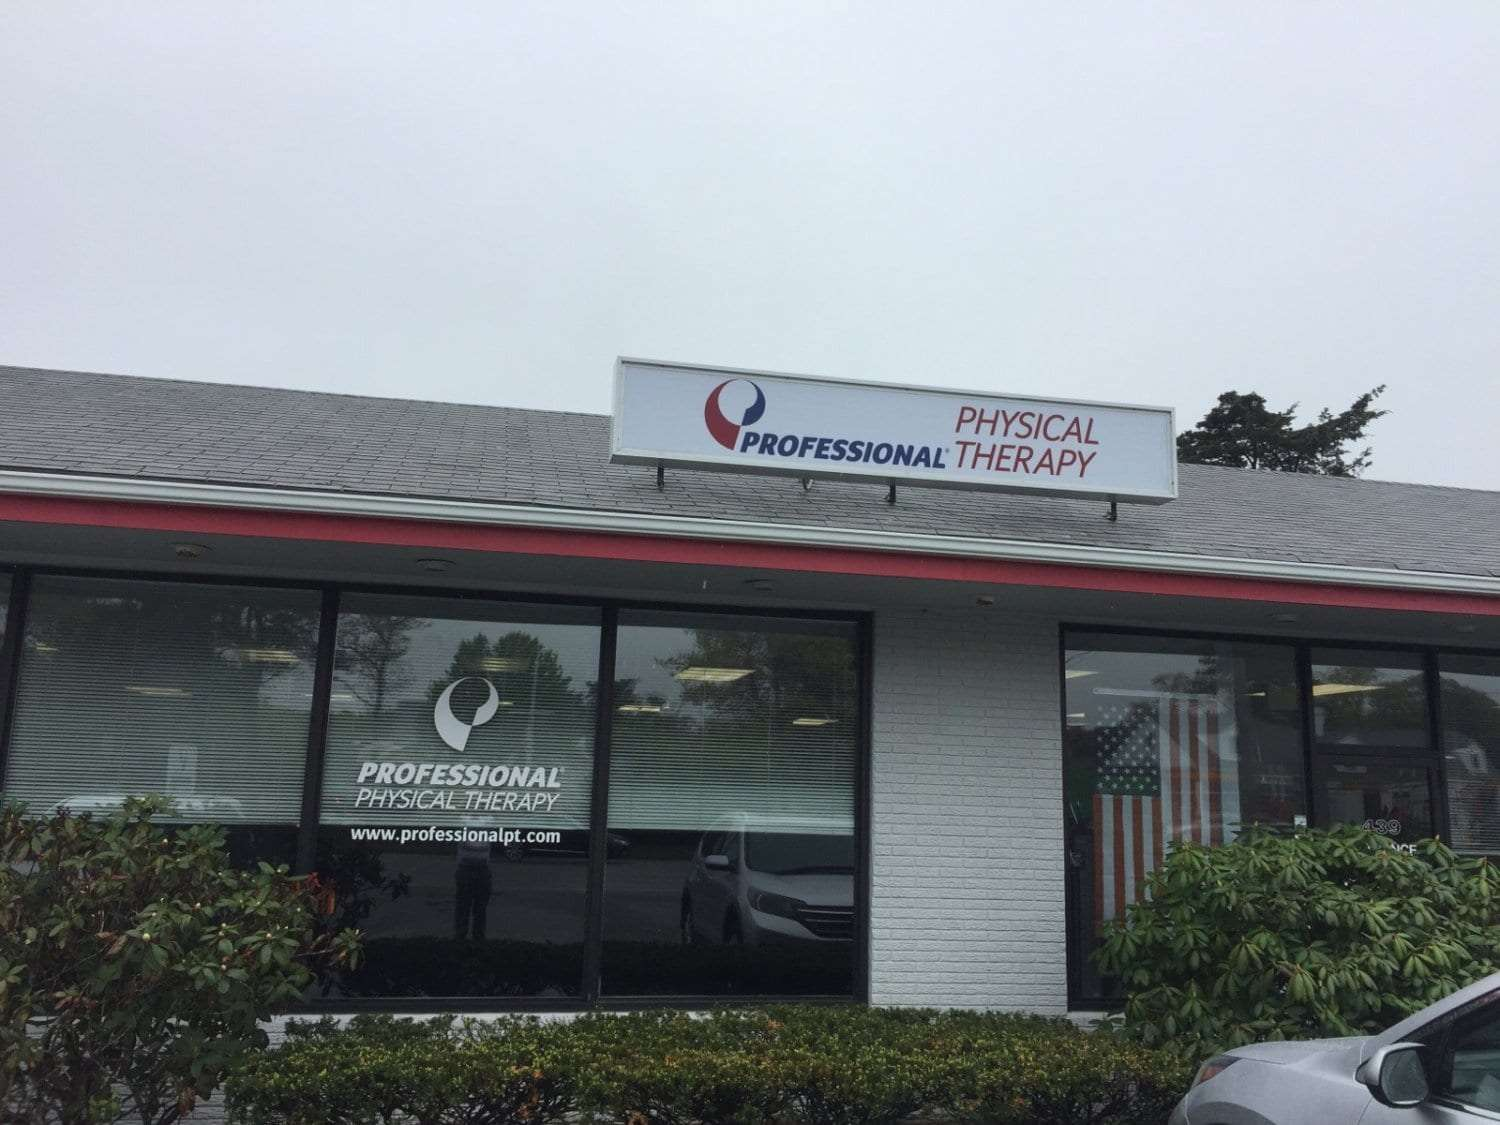 This is an image of the exterior of our Cape Cod, Massachusetts physical therapy clinic.